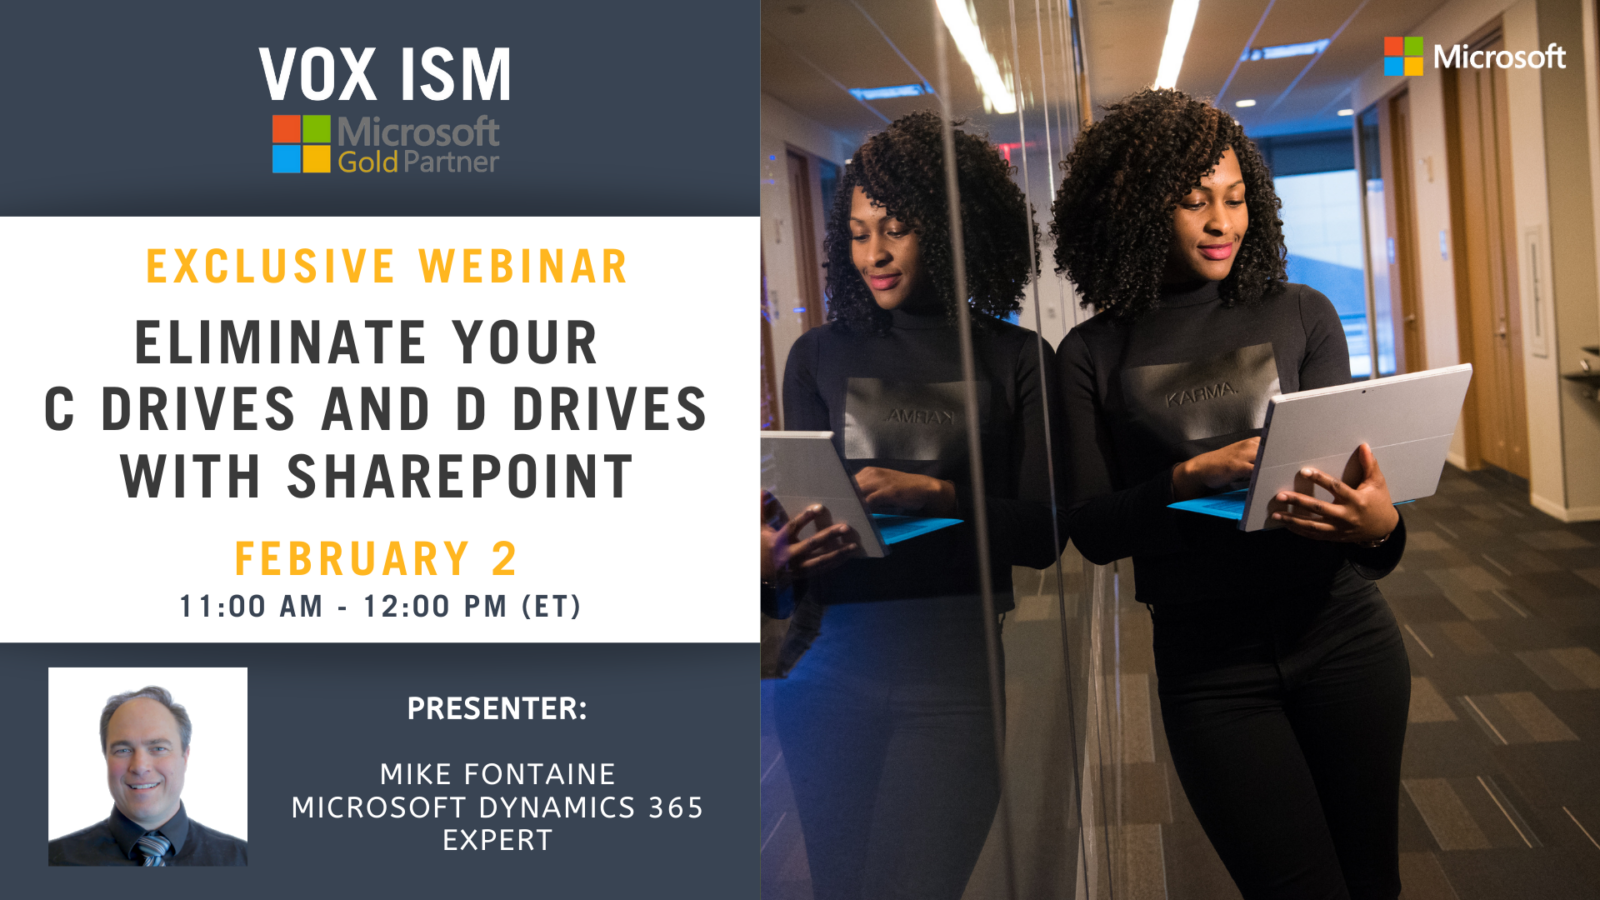 Eliminate your C drives and D drives with SharePoint - February 2 - Webinar